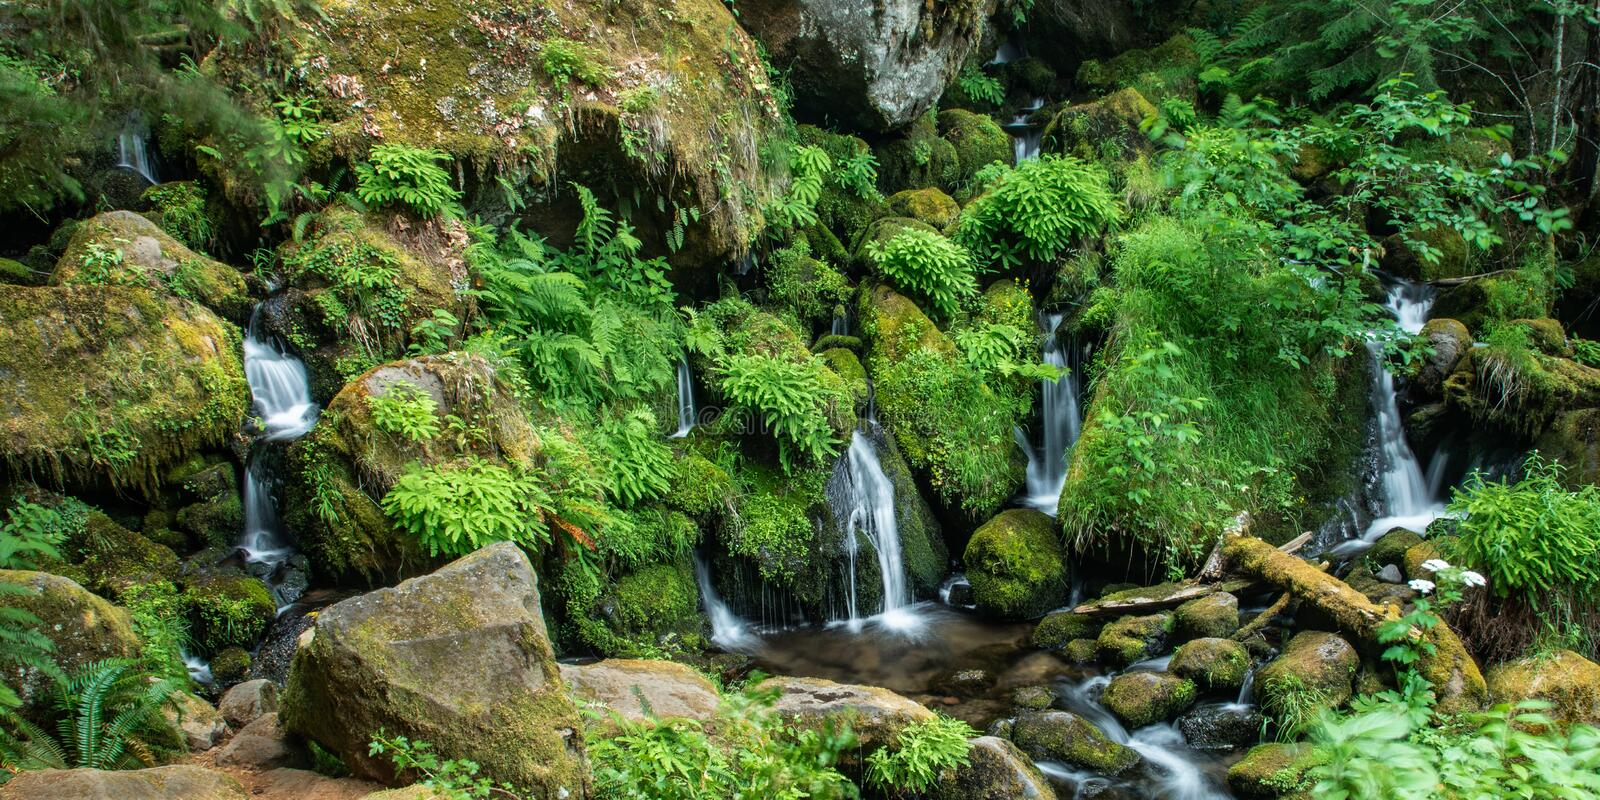 Intimate Waters. Panoramic Composition For Intemate Scene Of Small Cascades Babbling Through Dense Foliage Of Ferns And Moss, Watson Creek, Douglas County royalty free stock photo